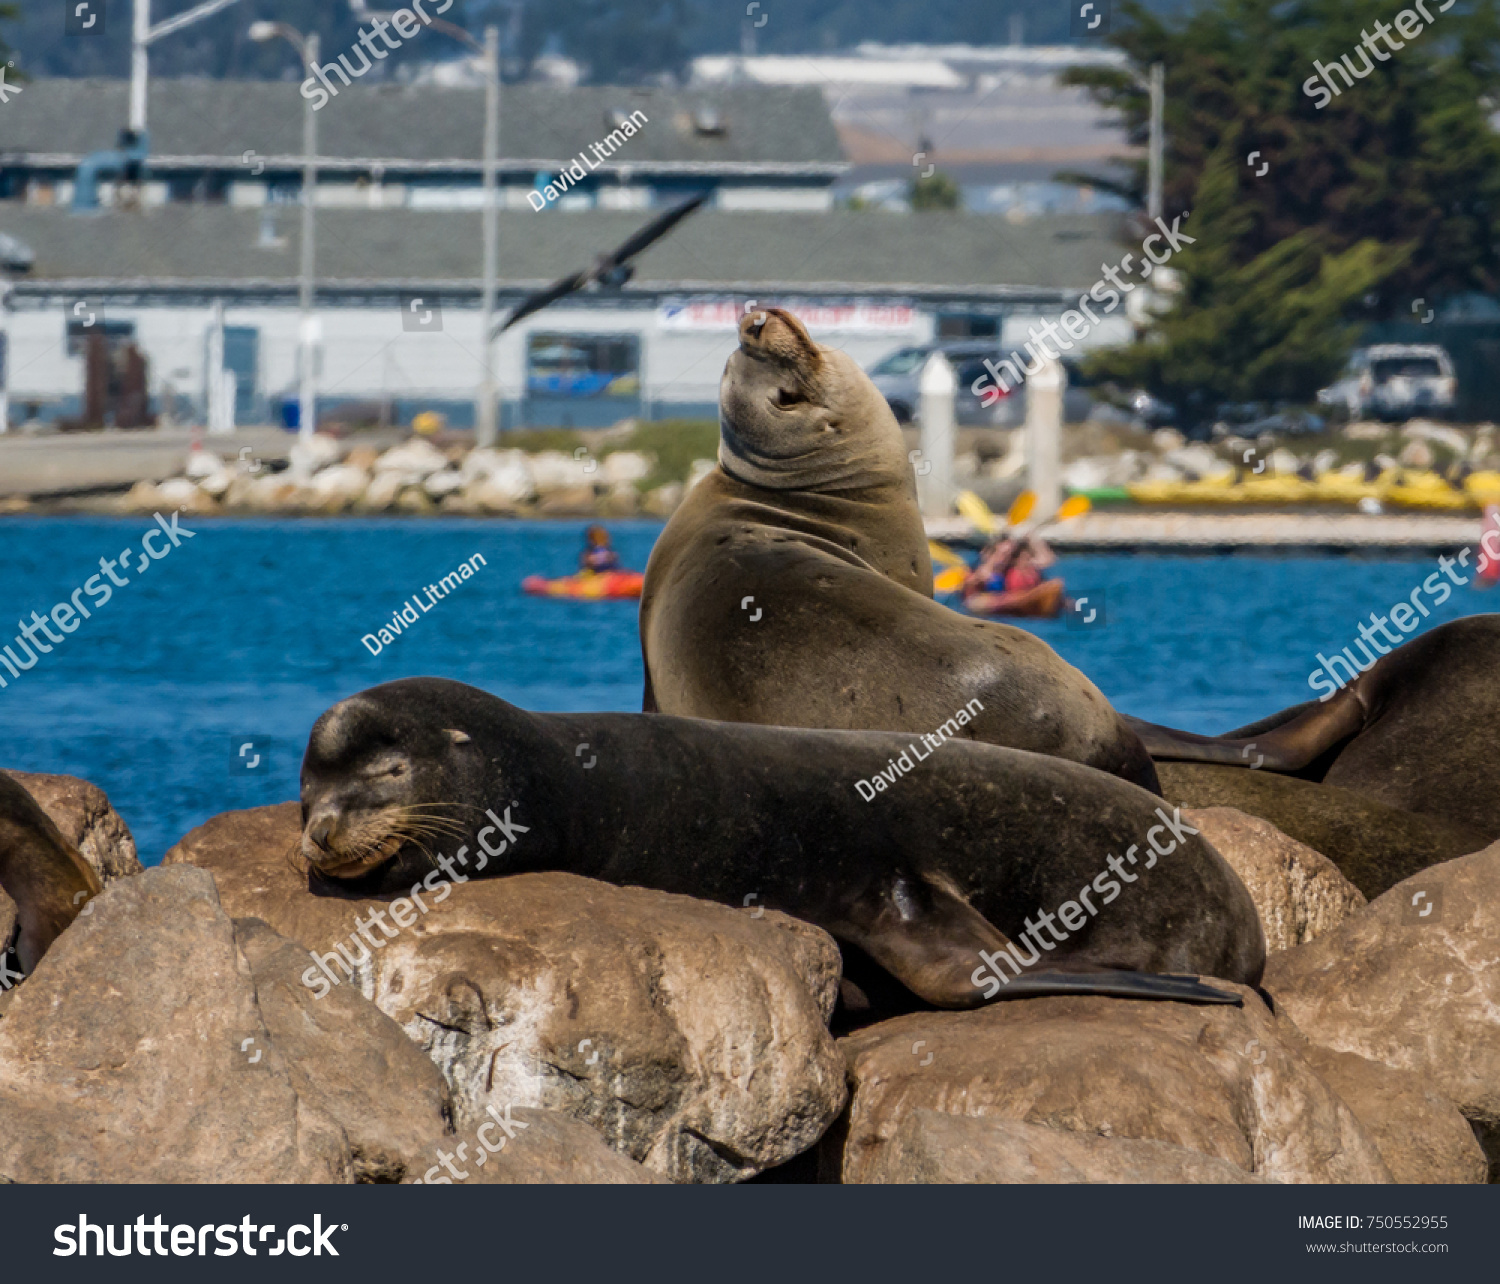 Moss Landing, California - October 27, 2017: Sea Lions lounge on the breakwater at Moss Landing Harbor, in Monterey County, as kayakers paddle in he background and a seagull flies by.